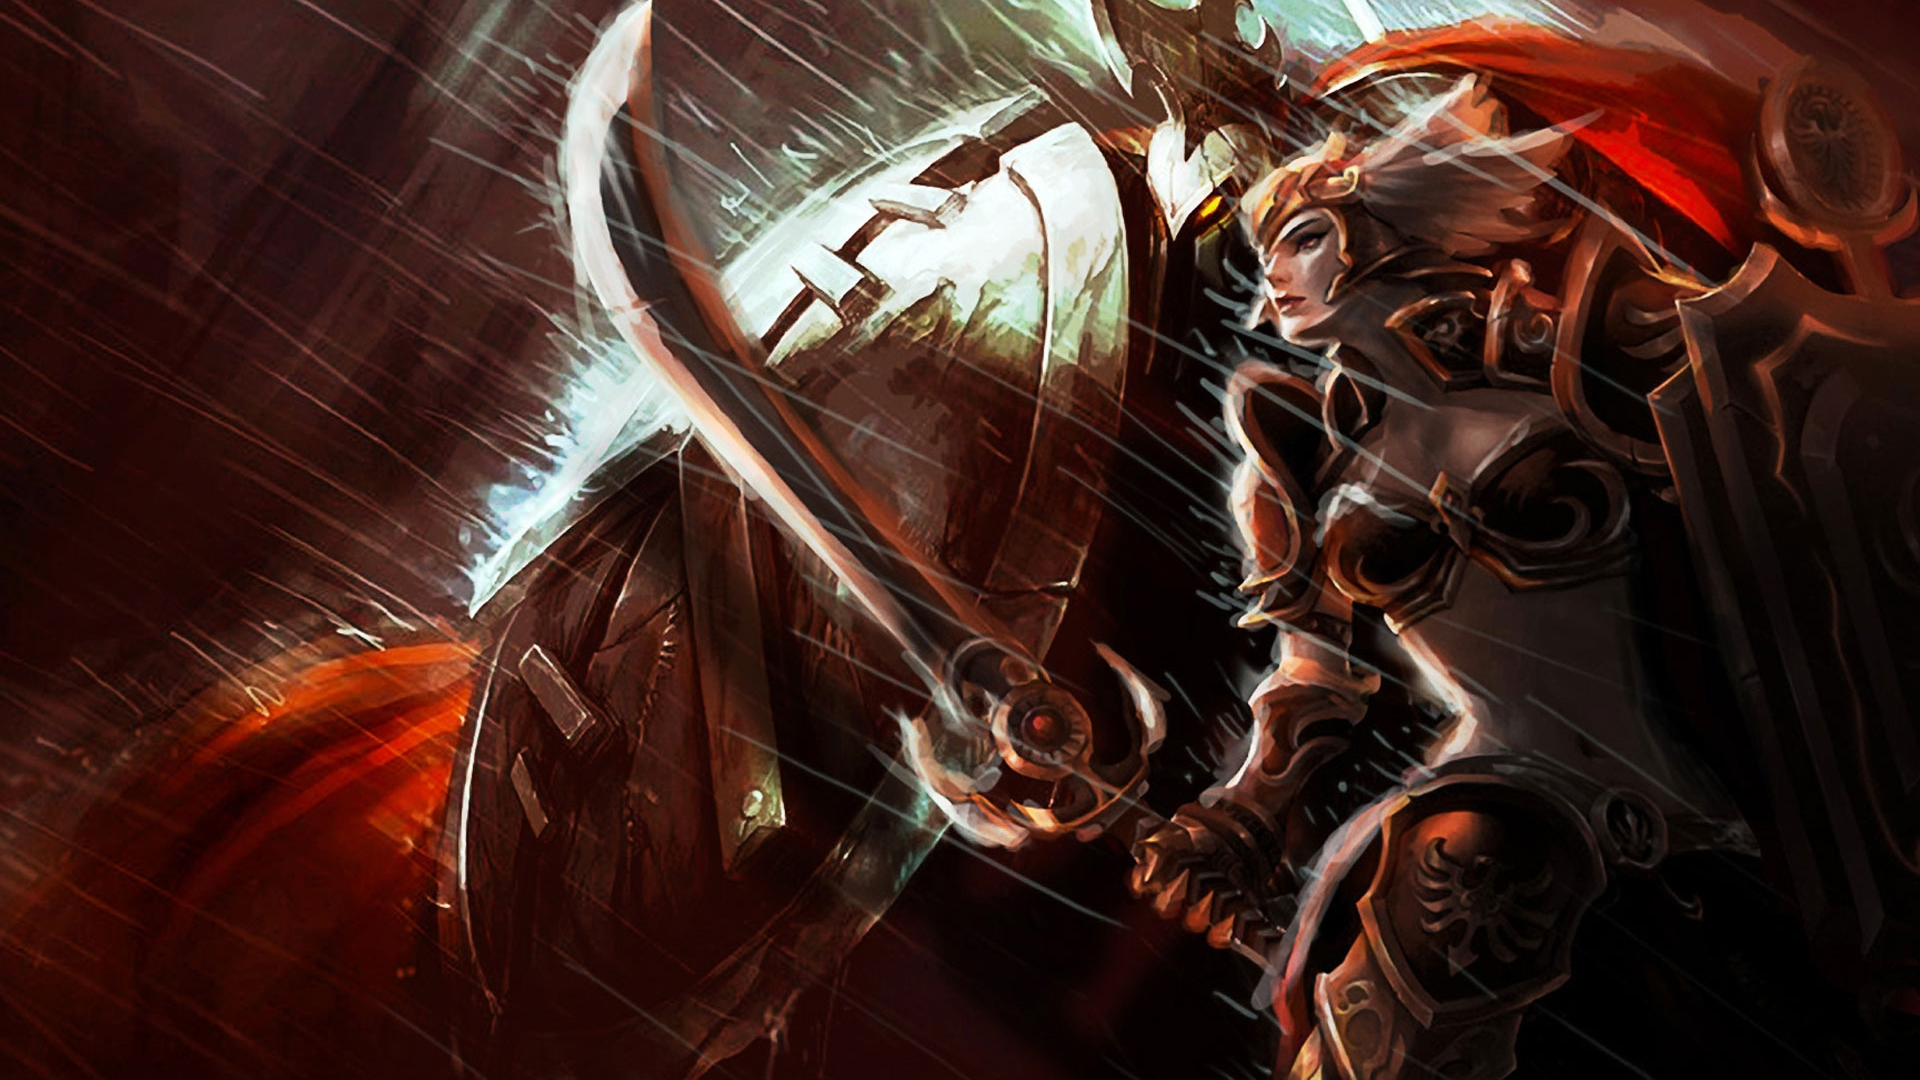 leona wallpaper fan art - photo #17